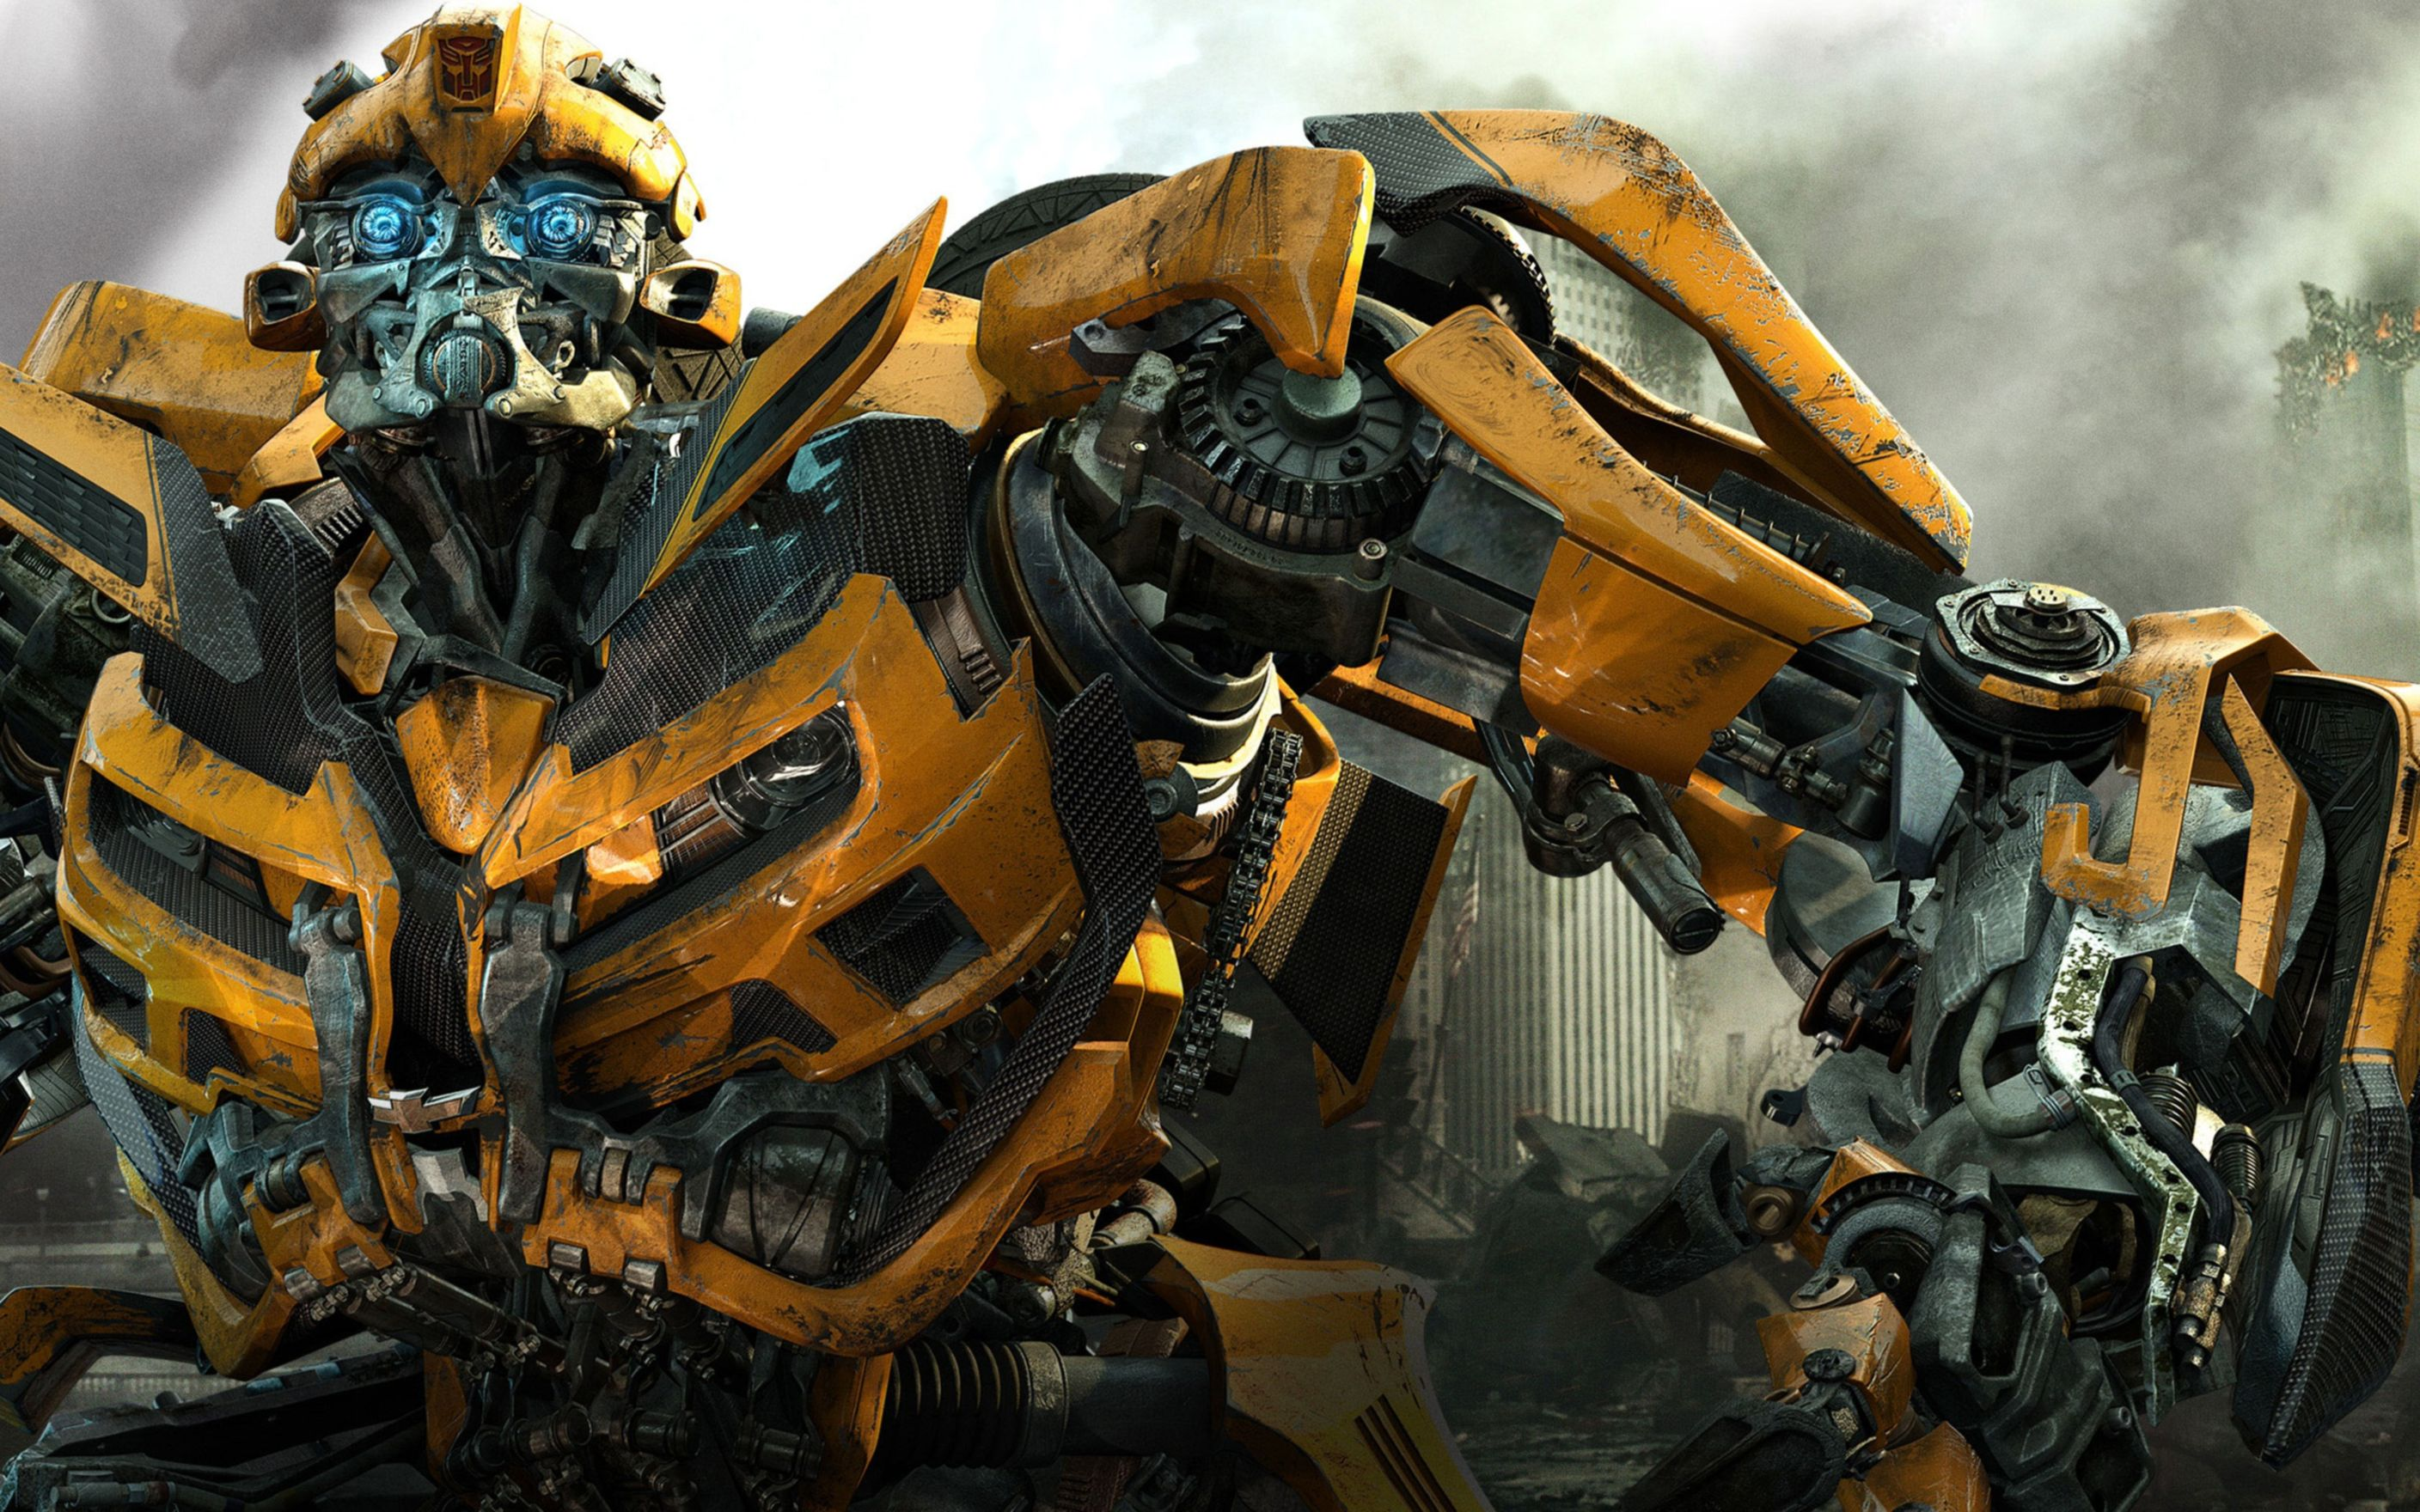 Download free HD Transformers 3 Bumblebee Wide Wallpaper, image